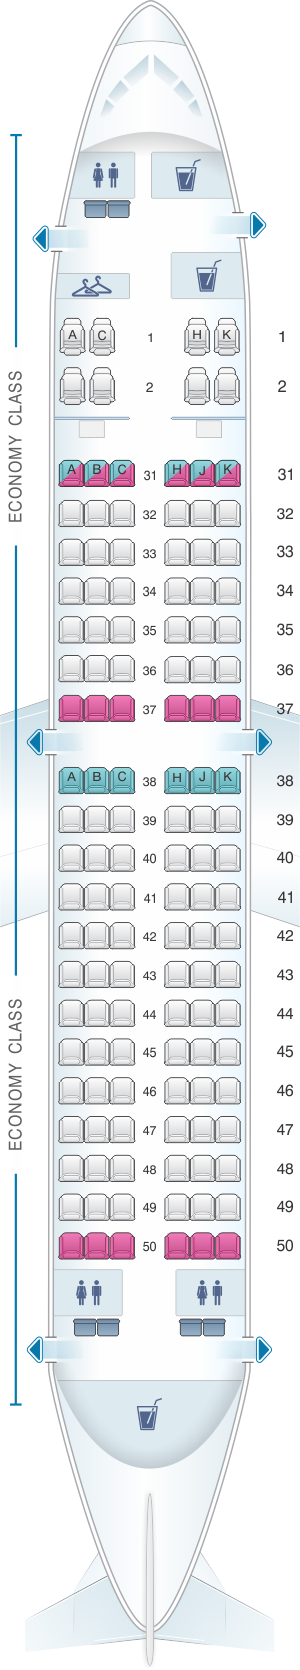 Seat map for Hainan Airlines Boeing B737 700HH